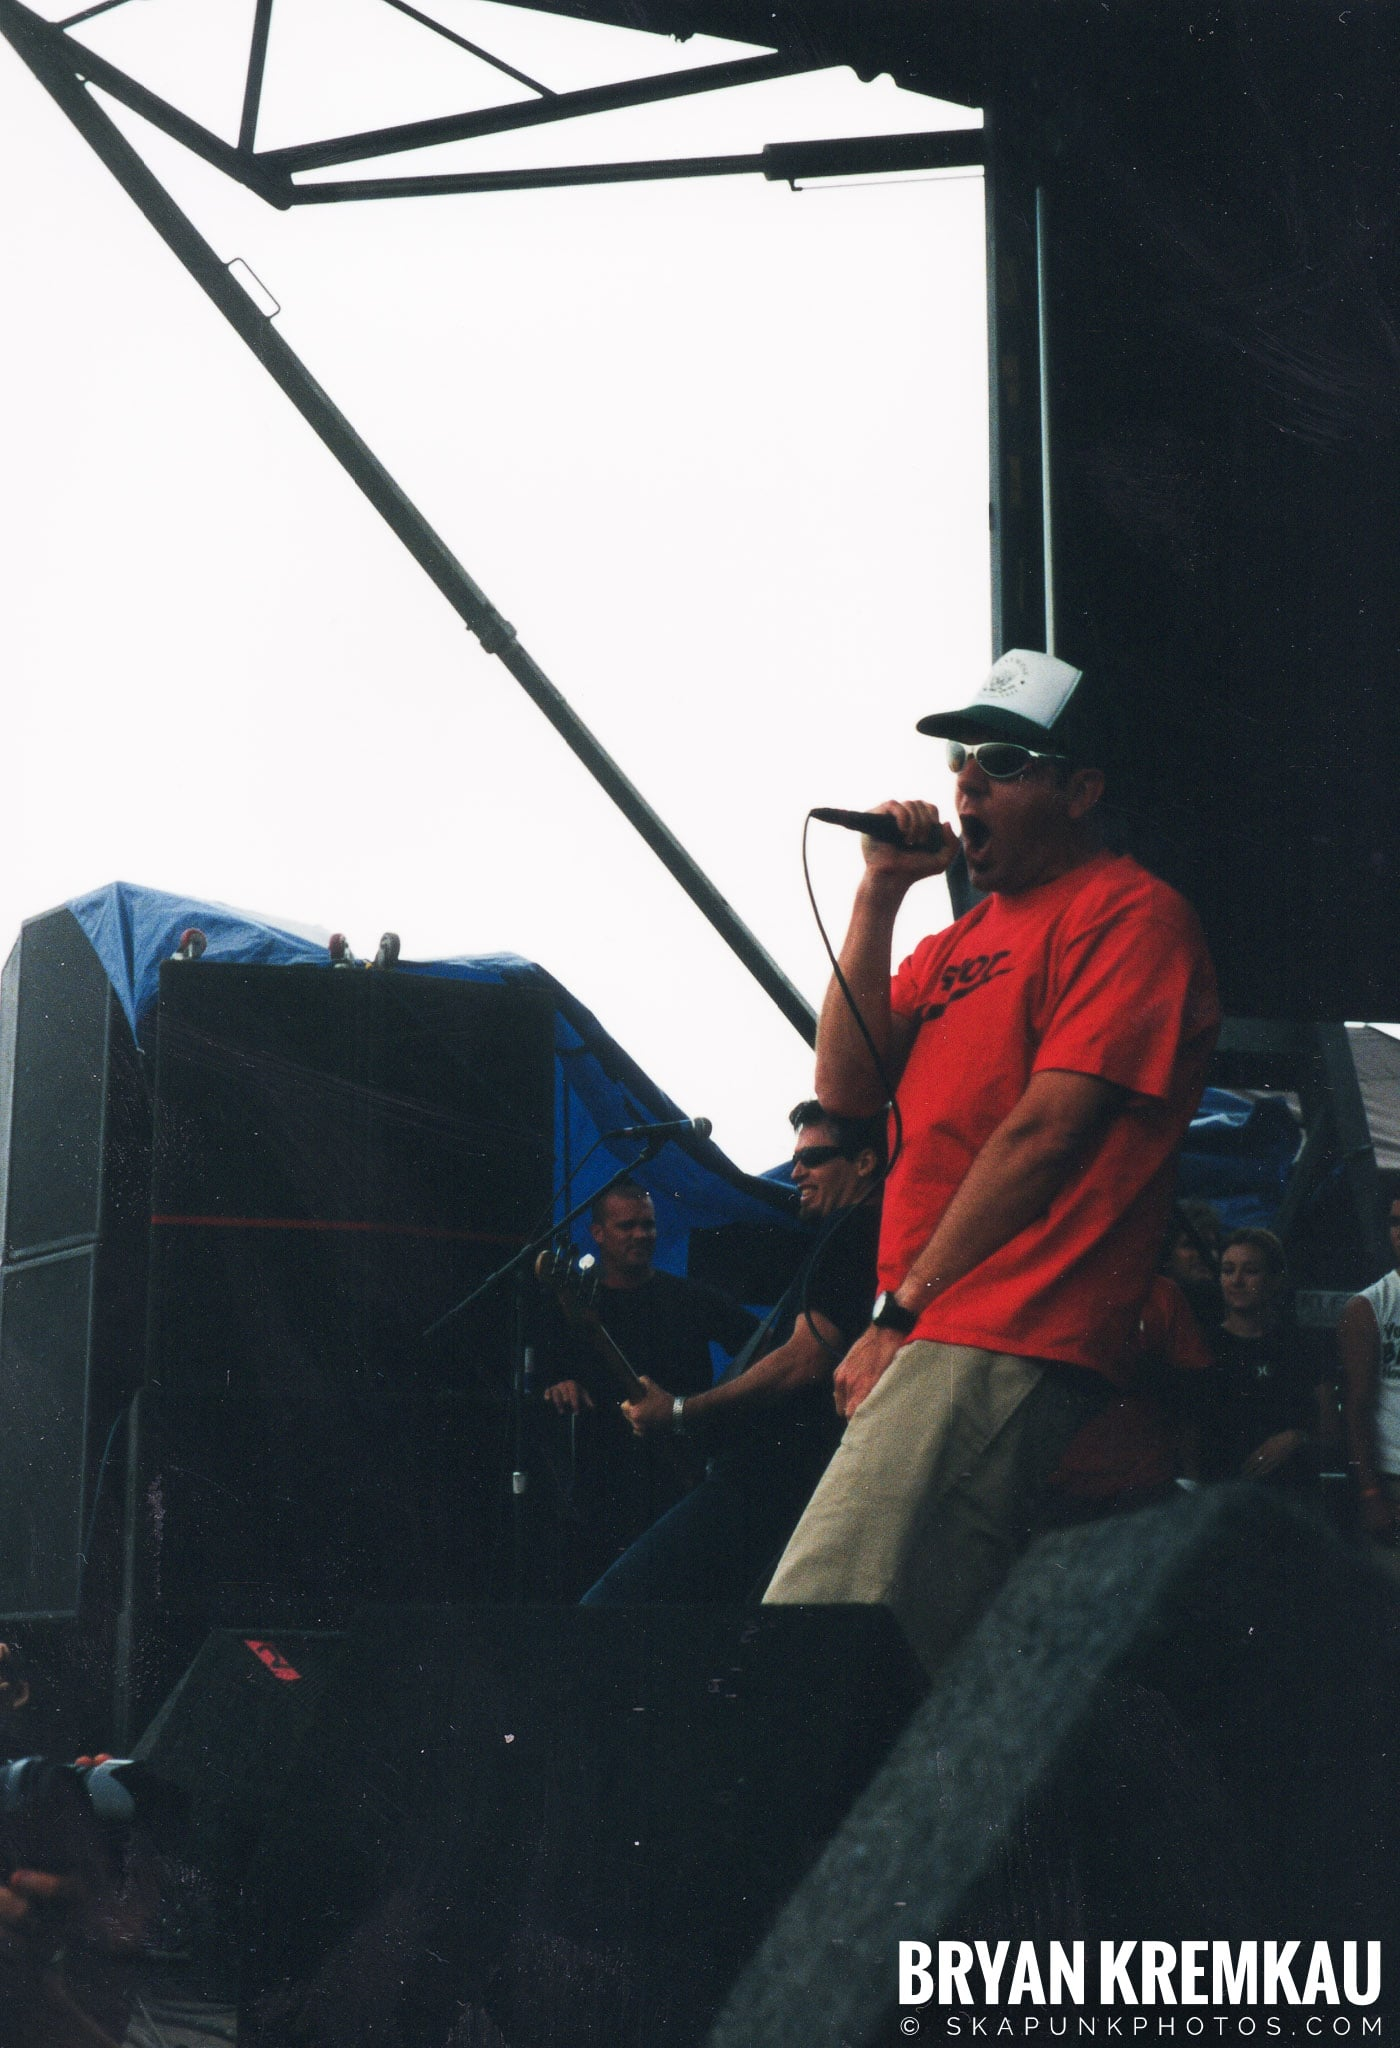 Pennywise @ Vans Warped Tour, Randall's Island, NYC - 8.4.01 (1)